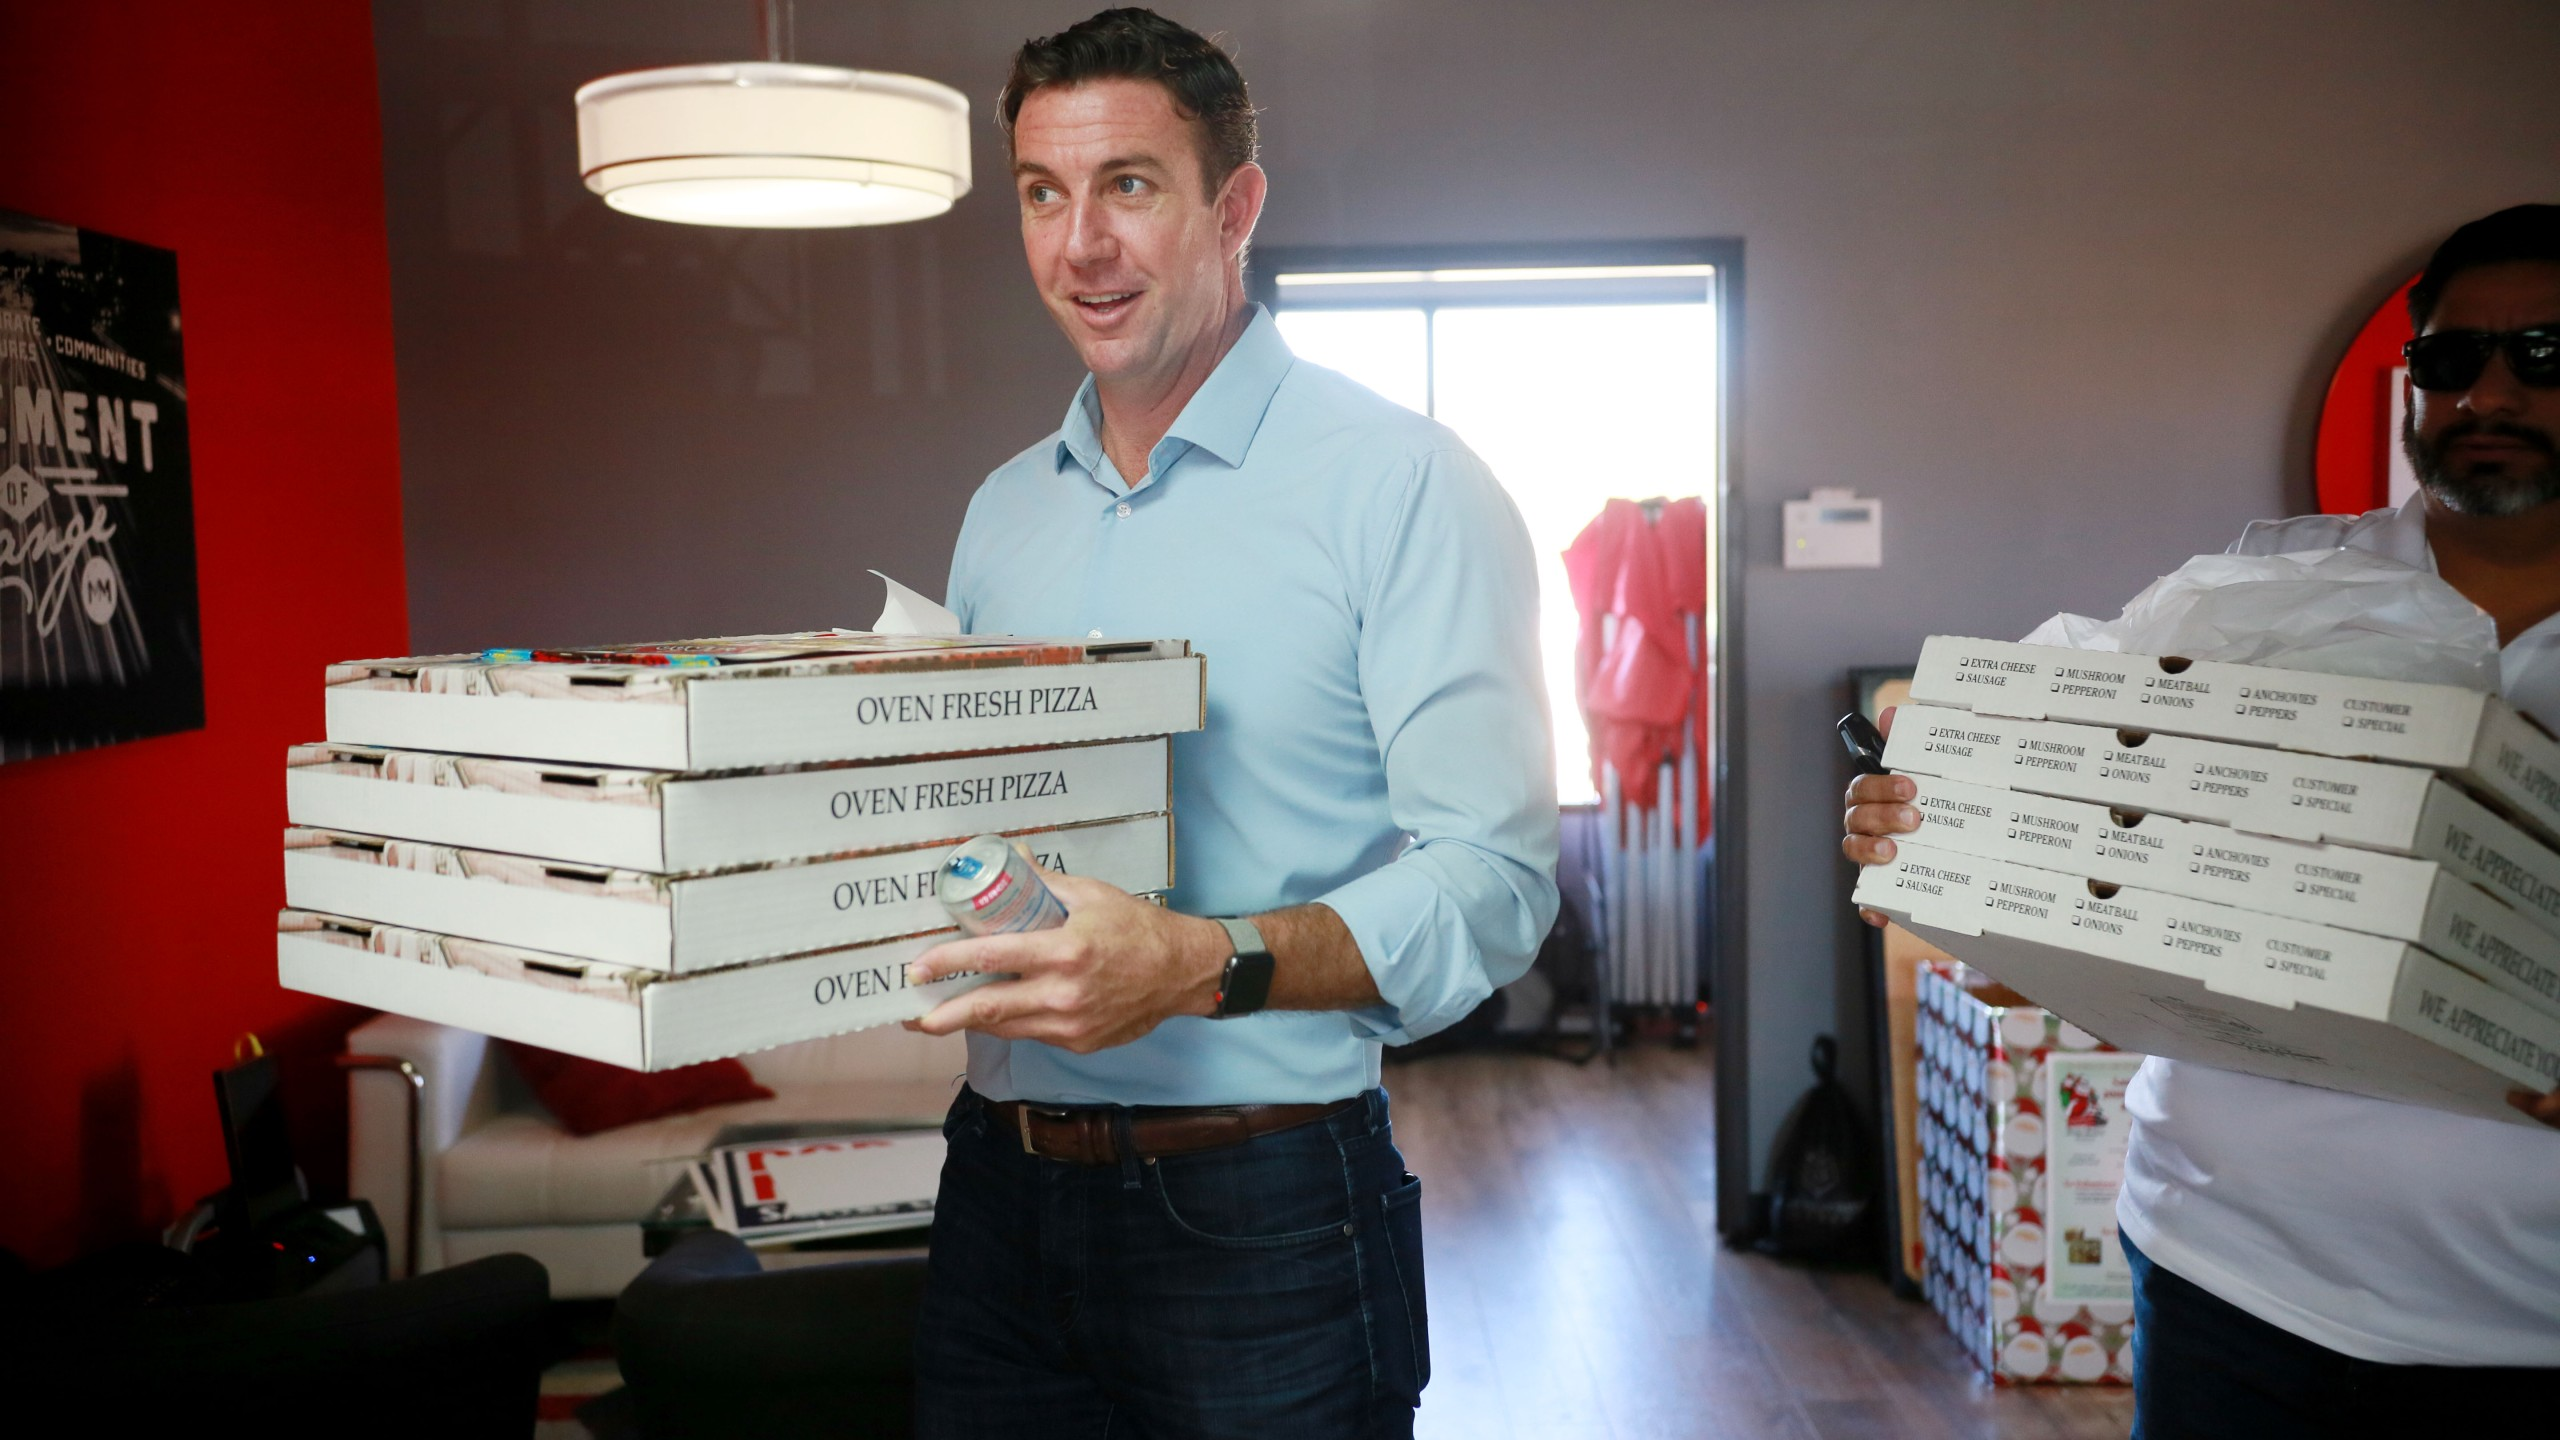 Rep. Duncan Hunter (R-CA) brings pizza to campaign staffers during a visit to one of his headquarters on Nov. 6, 2018, in Santee. (Credit: Sandy Huffaker/Getty Images)